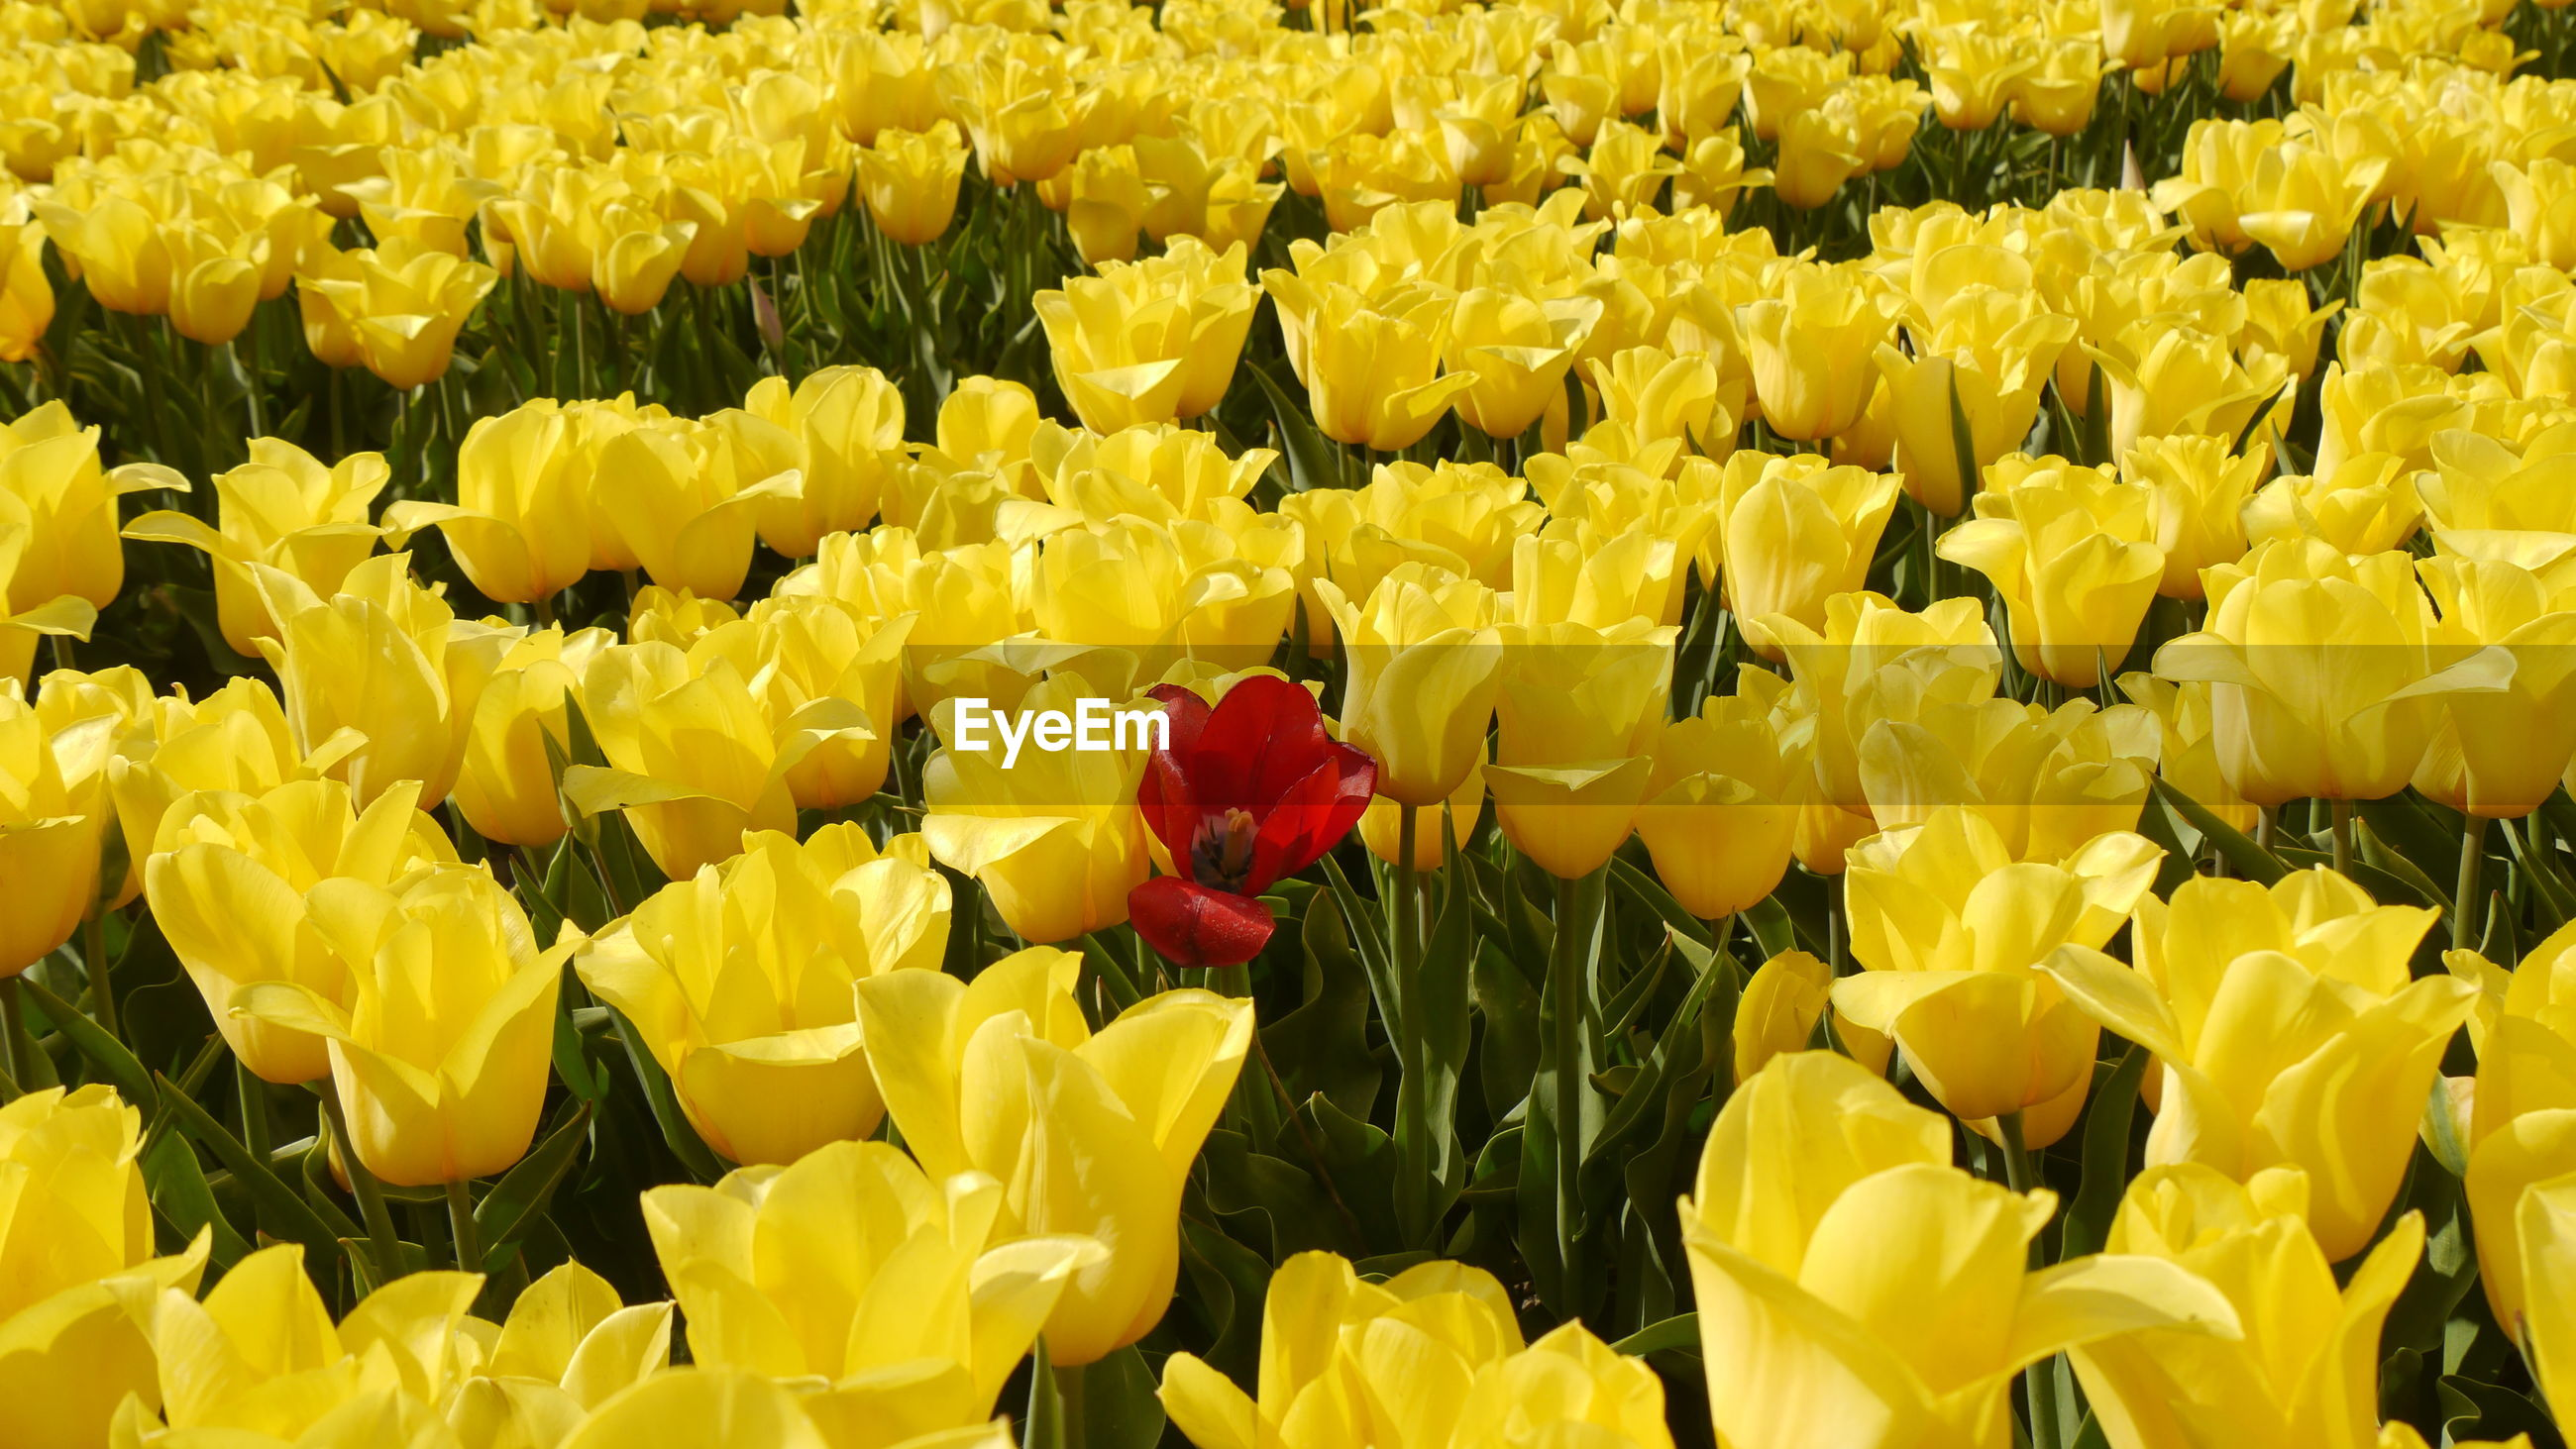 Close-up of yellow tulips in field with single red one